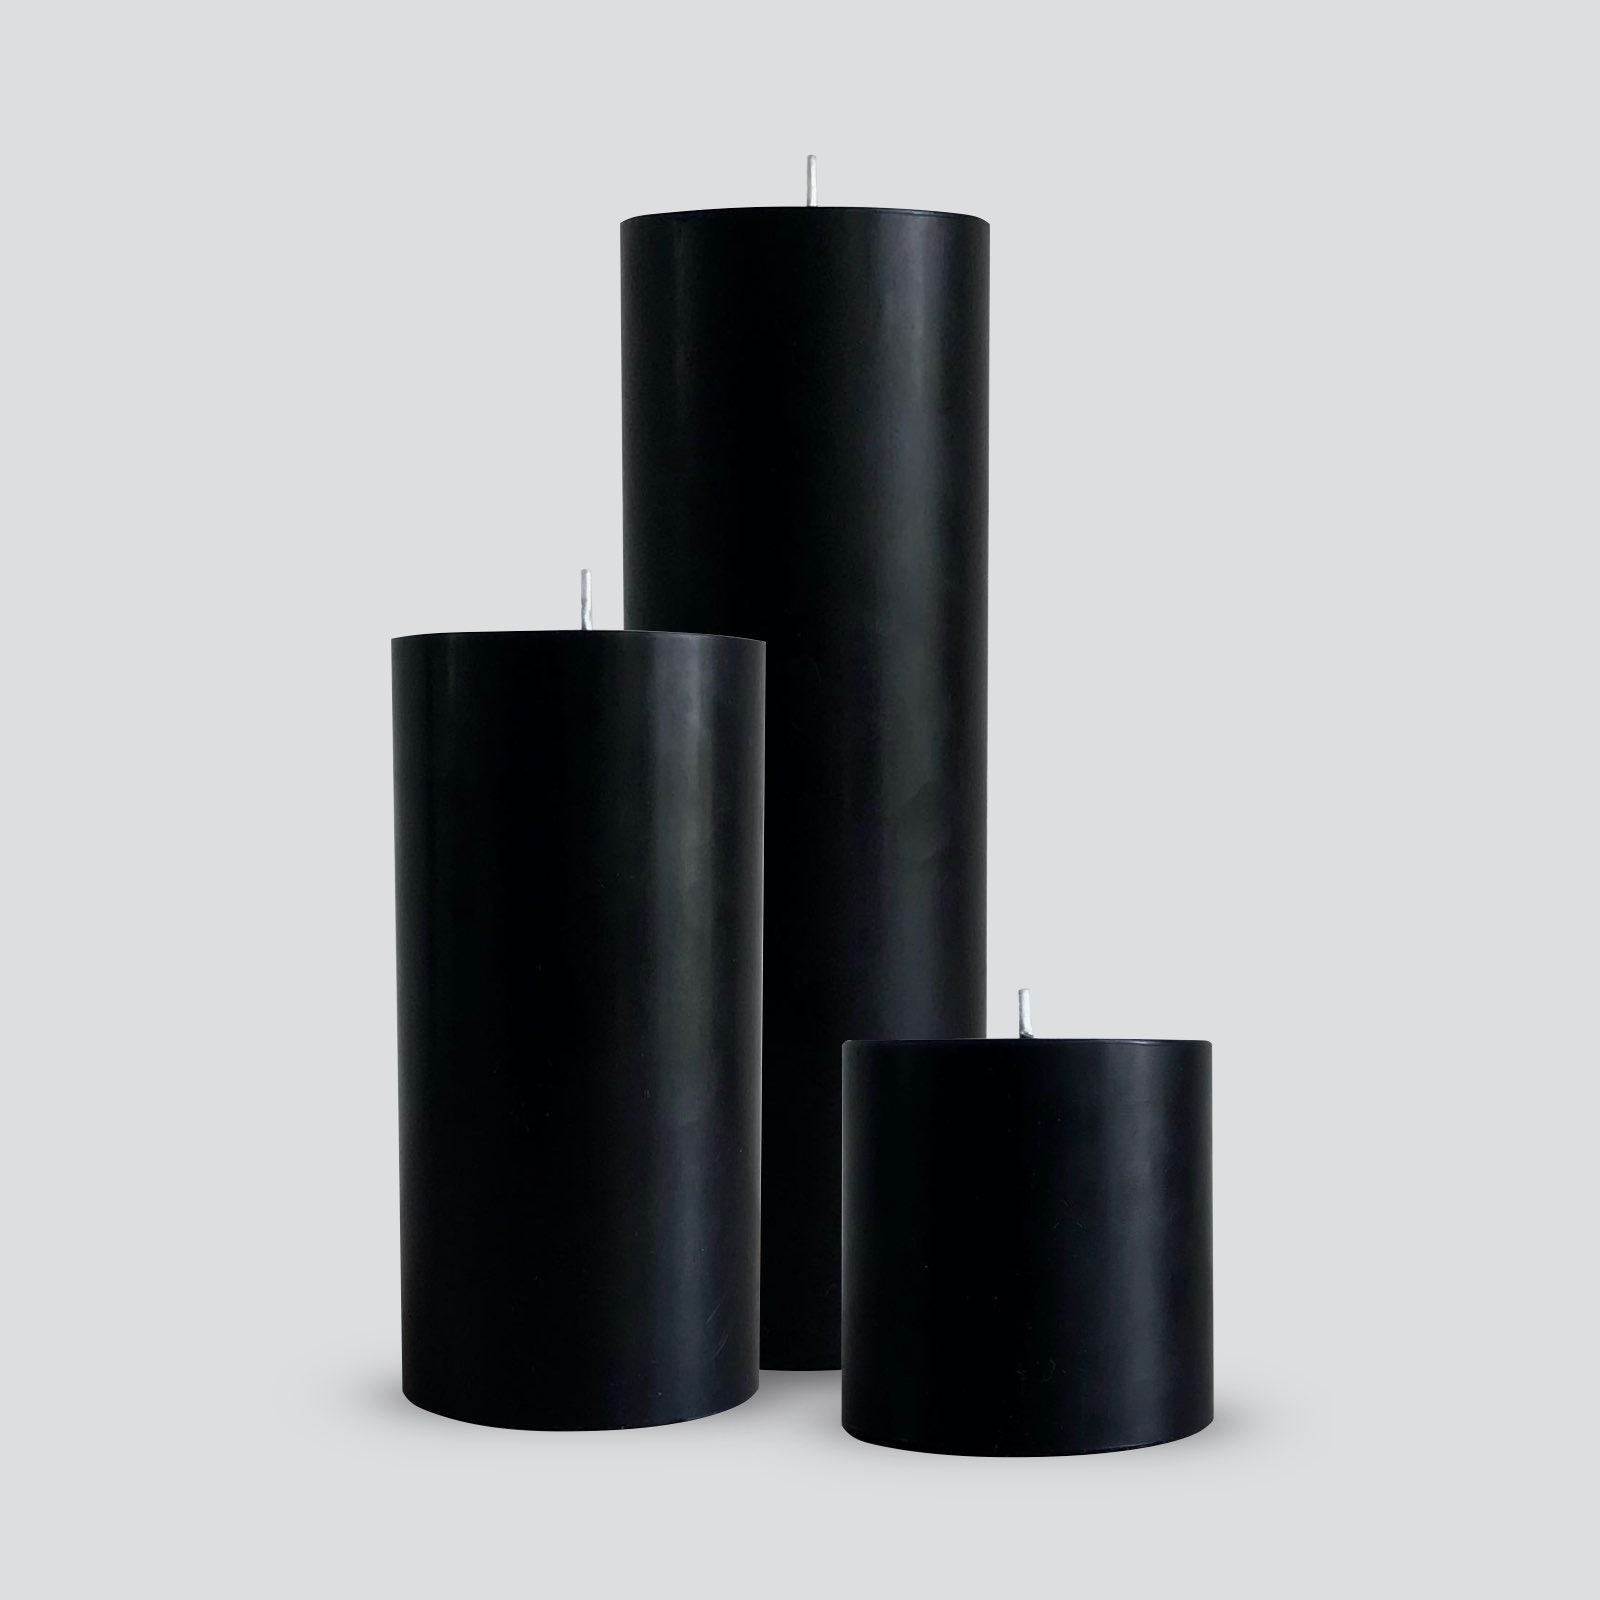 Large black pillar candles